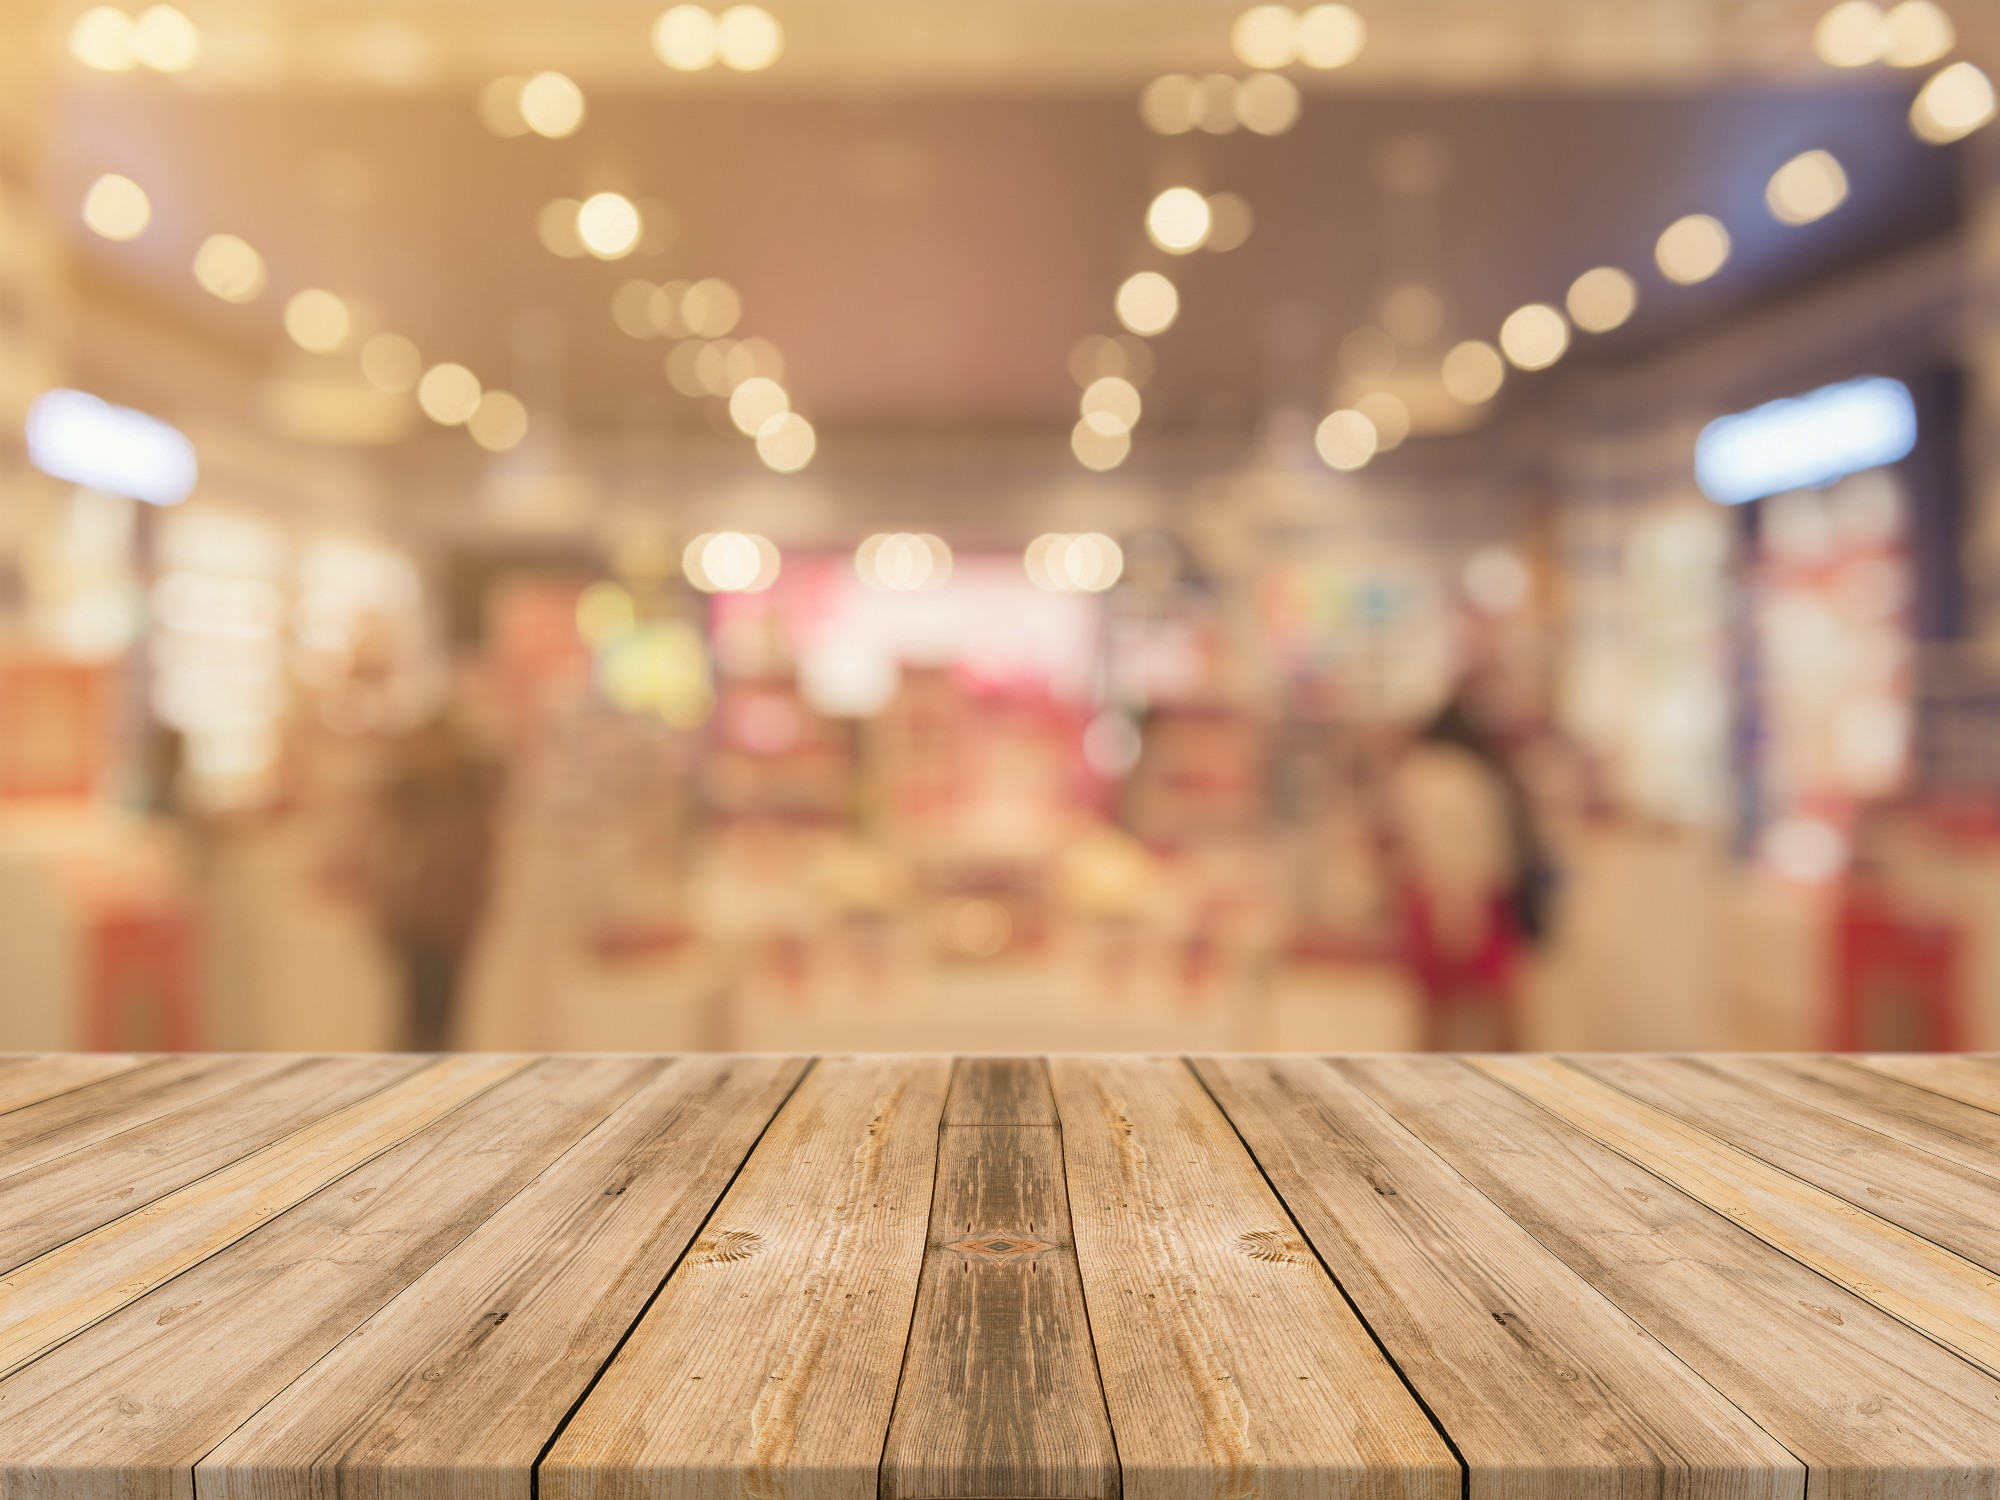 image of a wooden table in focus and a blurry background